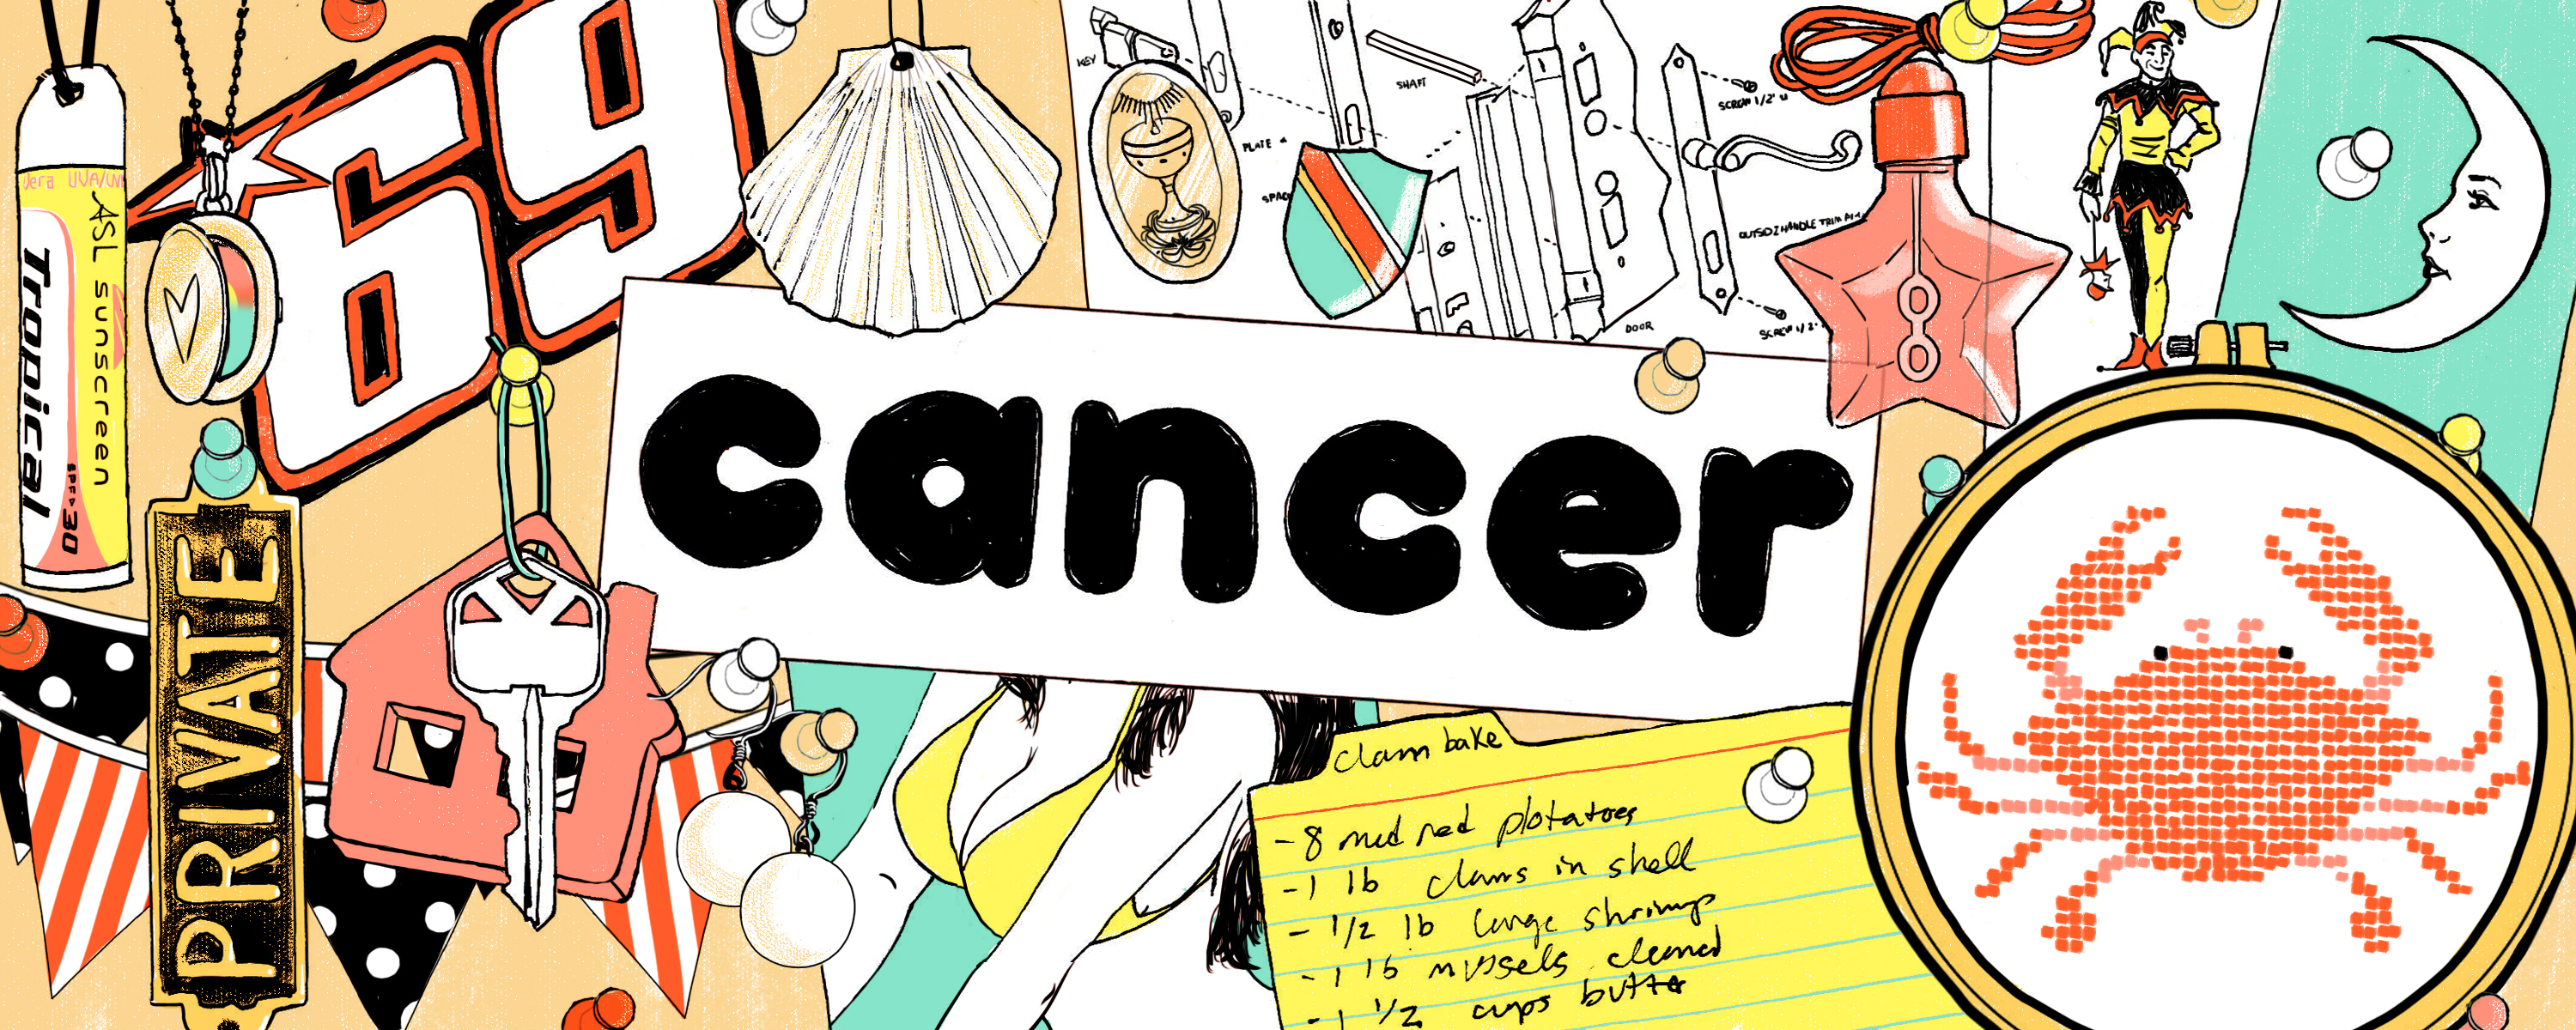 Monthly Horoscope: Cancer, July 2019 - VICE